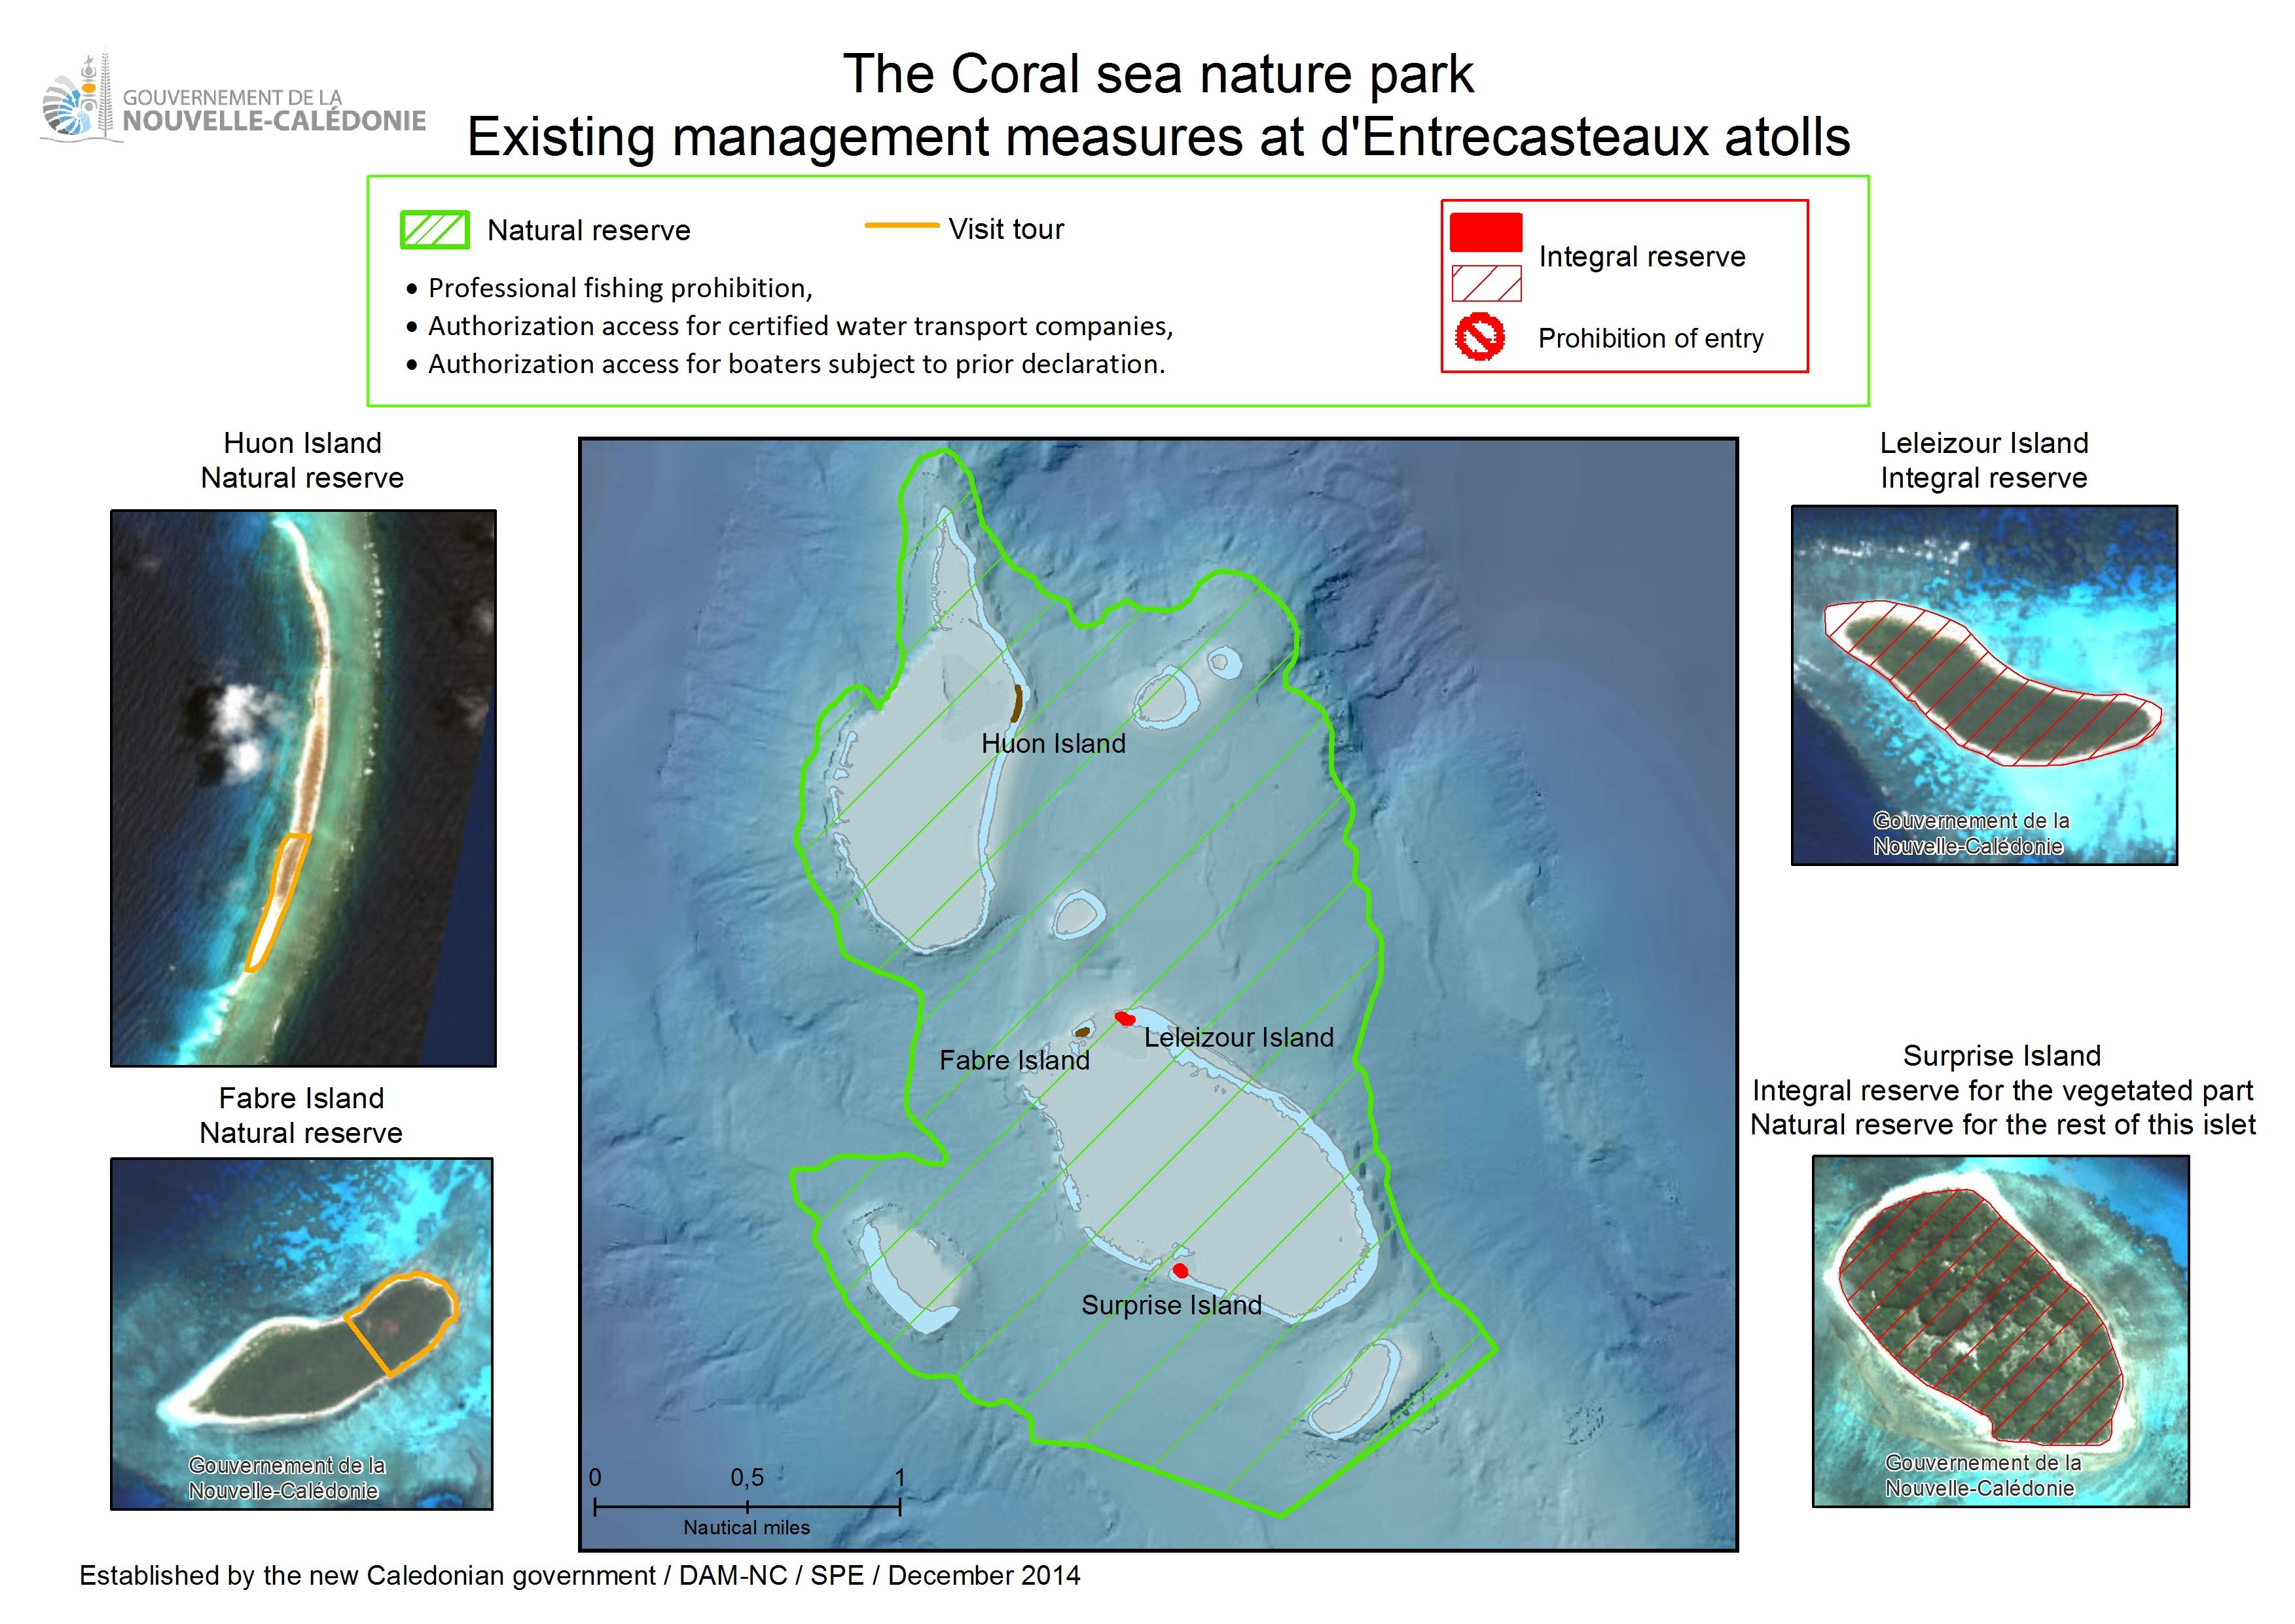 Existing management measures at d'Entrecasteaux atolls.jpg